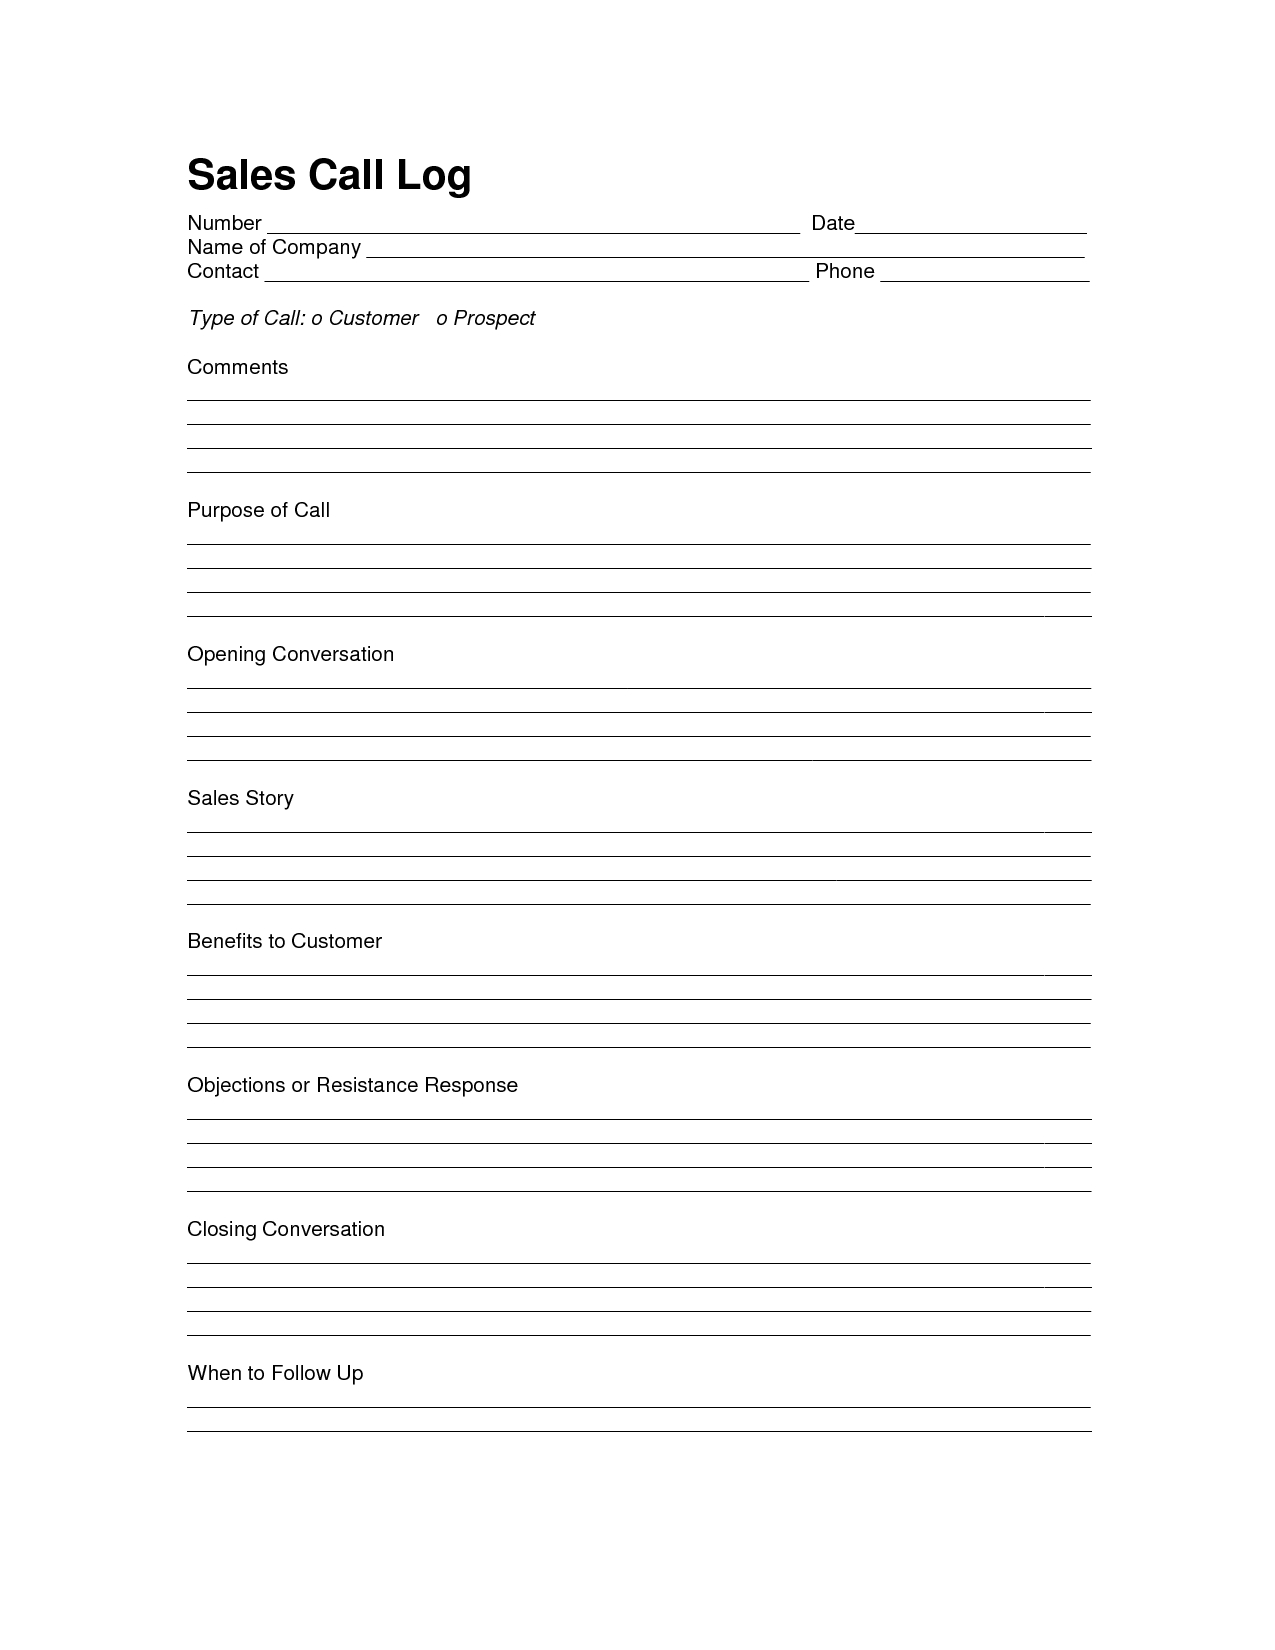 Sales Log Sheet Template | Sales Call Log Template | Call Log - Free Printable Message Sheets